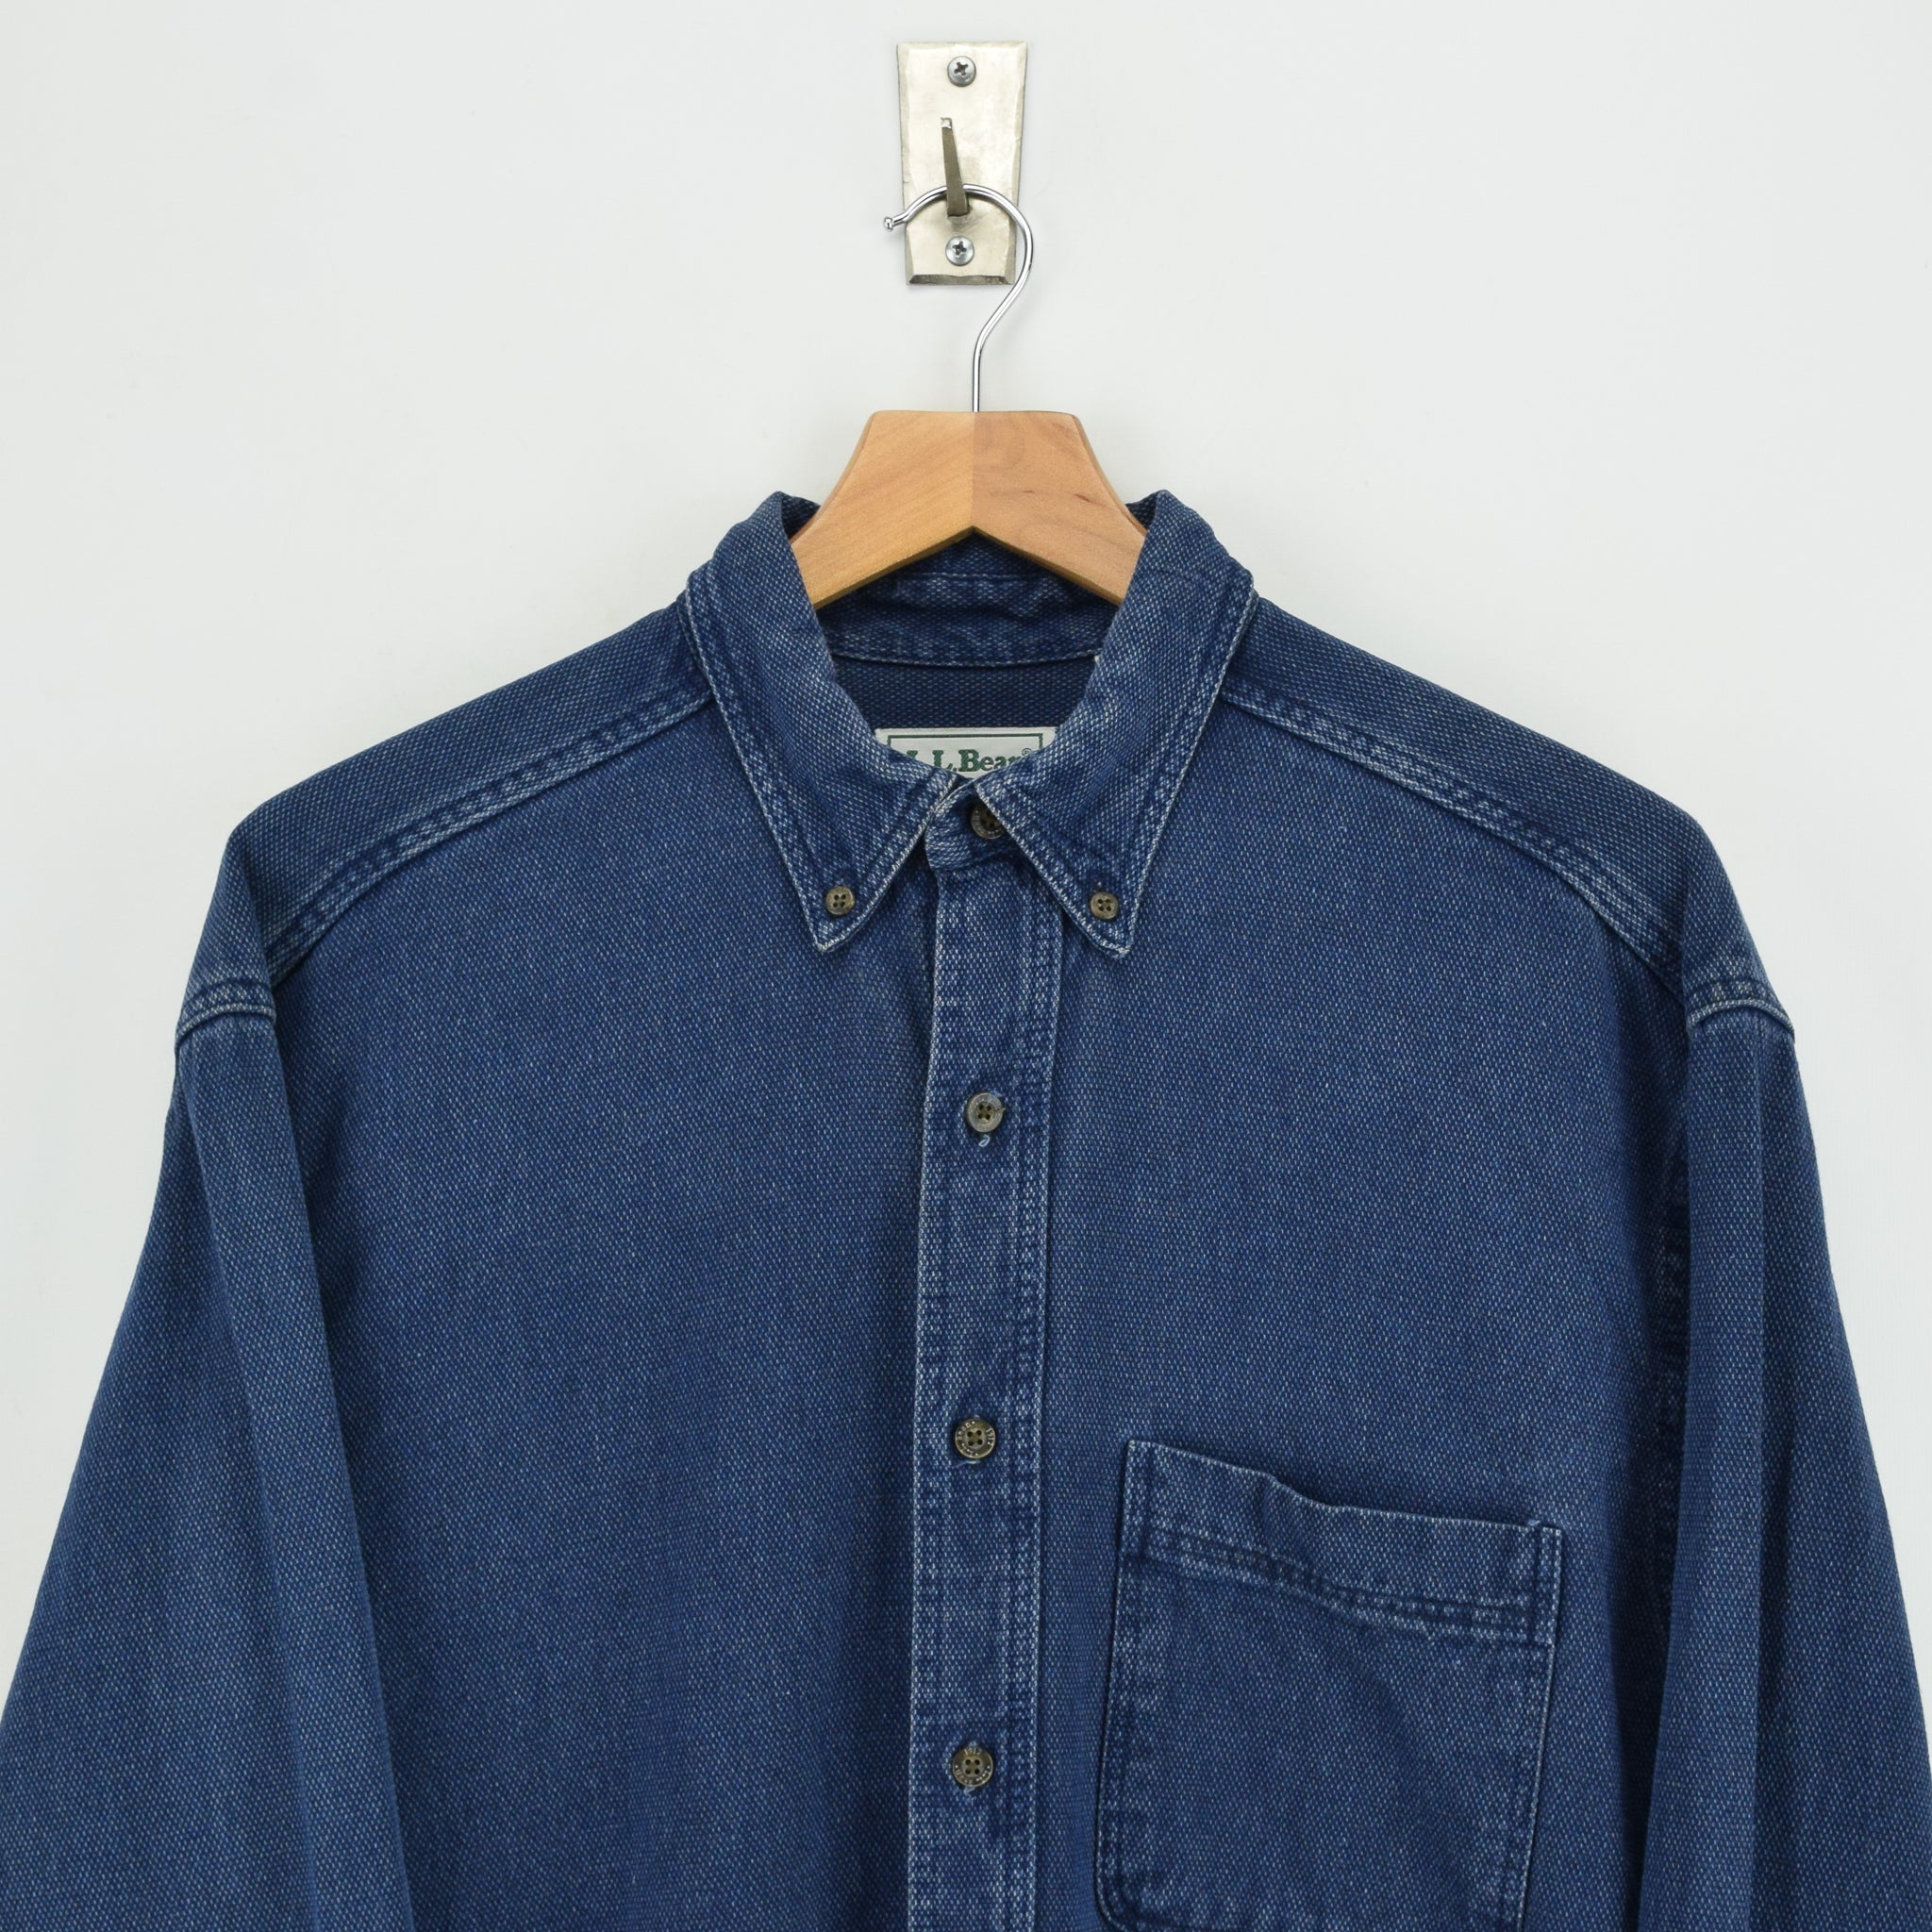 Vintage LL Bean AY45 Indigo Blue Cotton Shirt Long Sleeve Made in USA M Reg chest